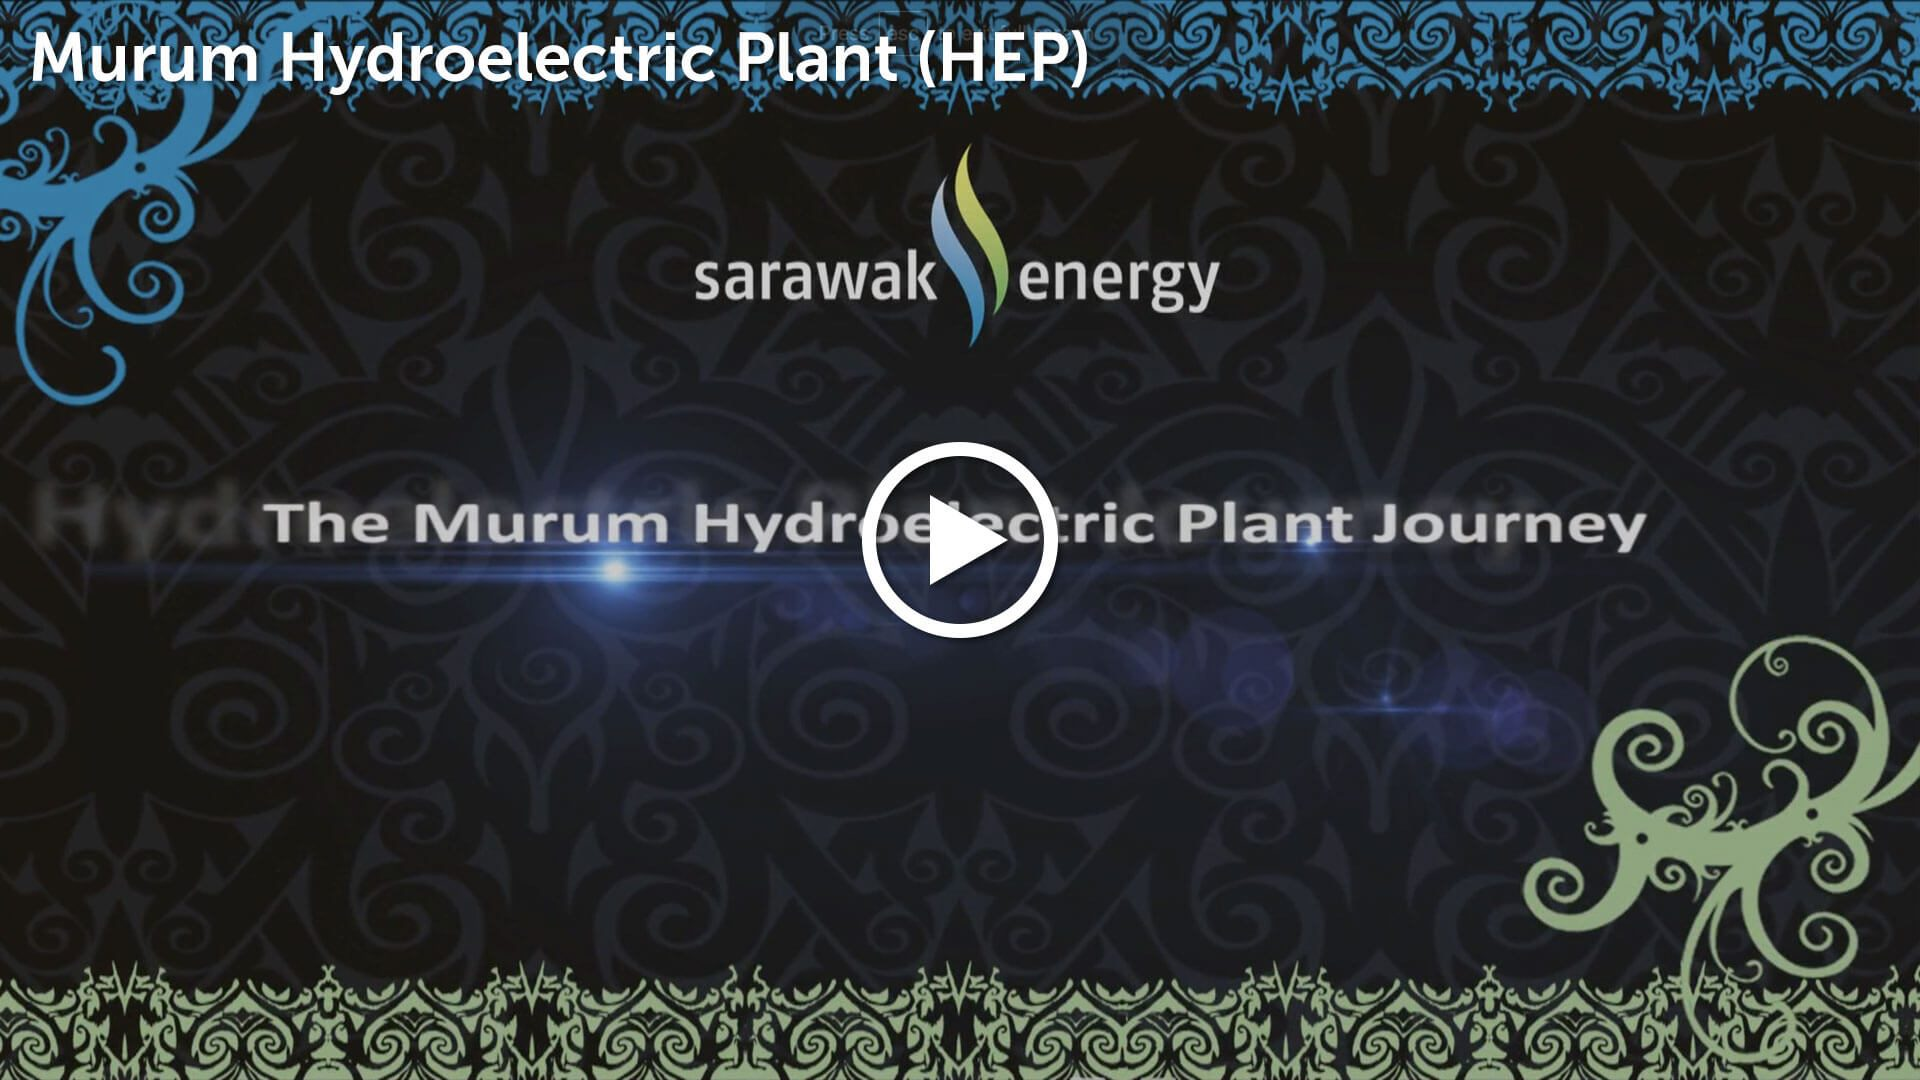 Murum Hydroelectric Plant Video Thumbnail